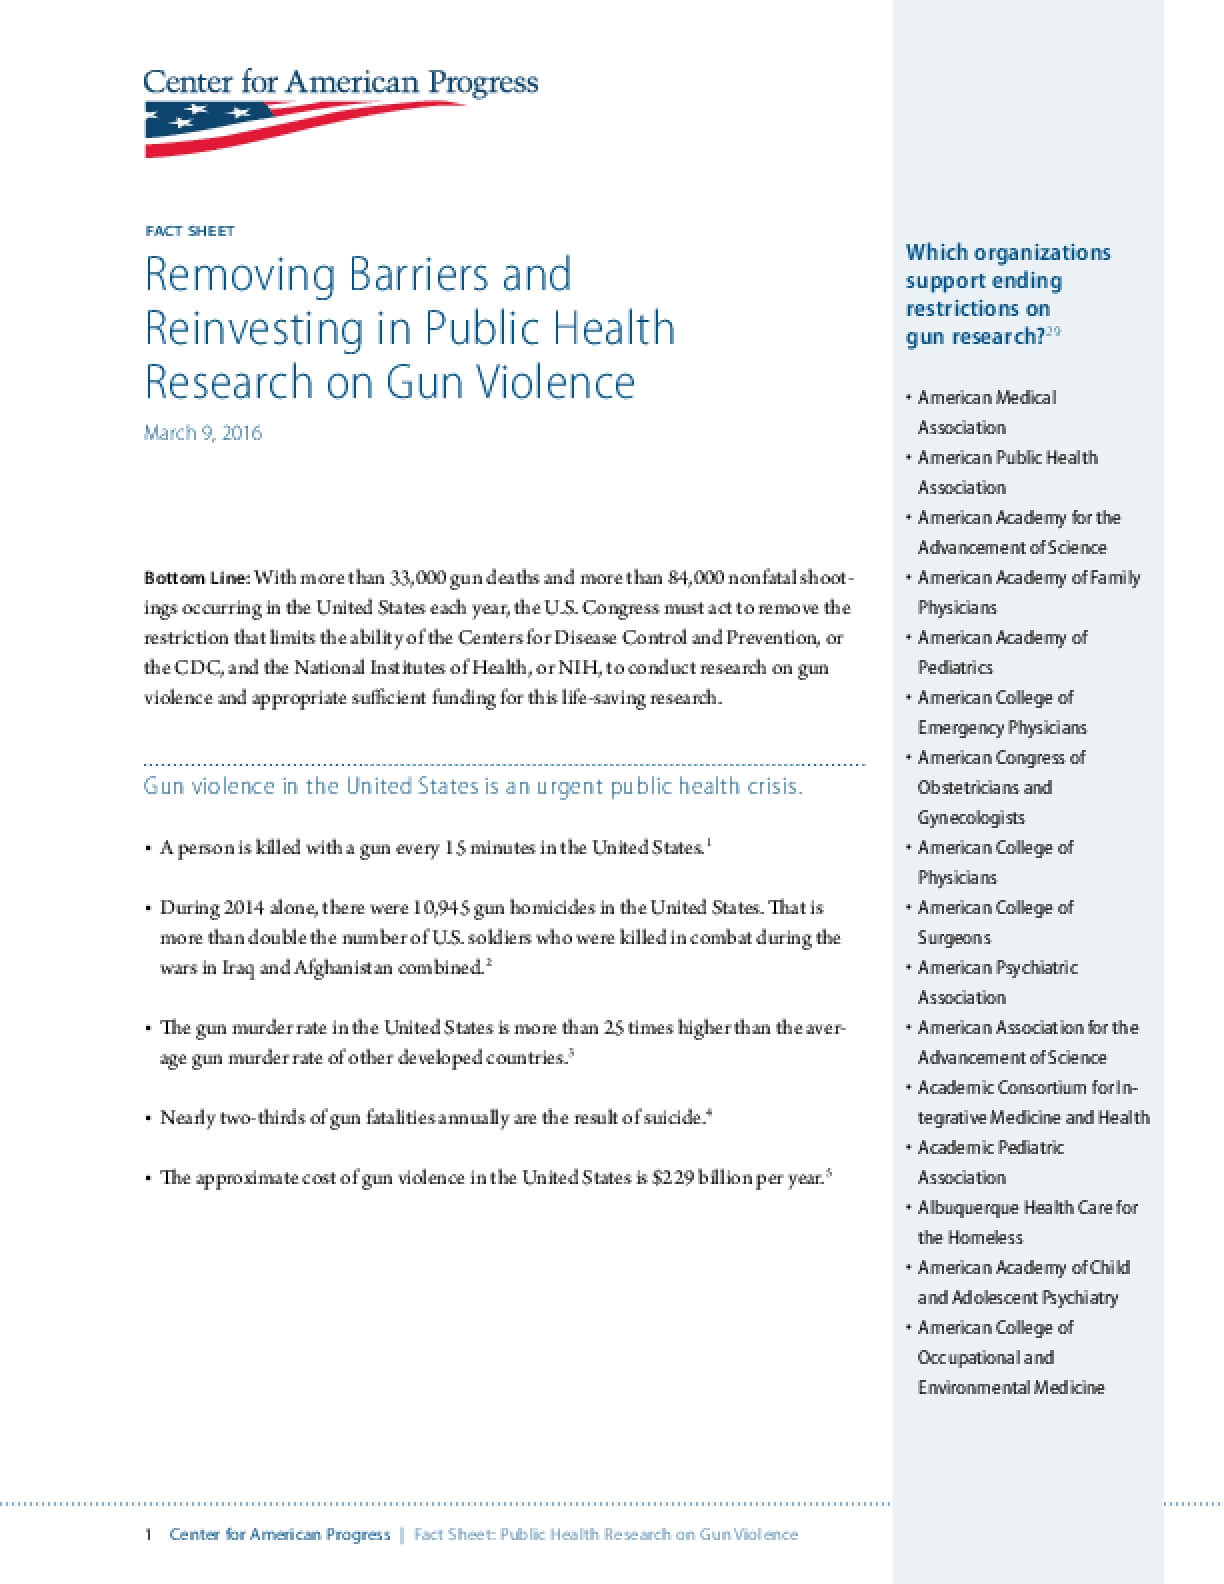 Removing Barriers and Reinvesting in Public Health Research on Gun Violence